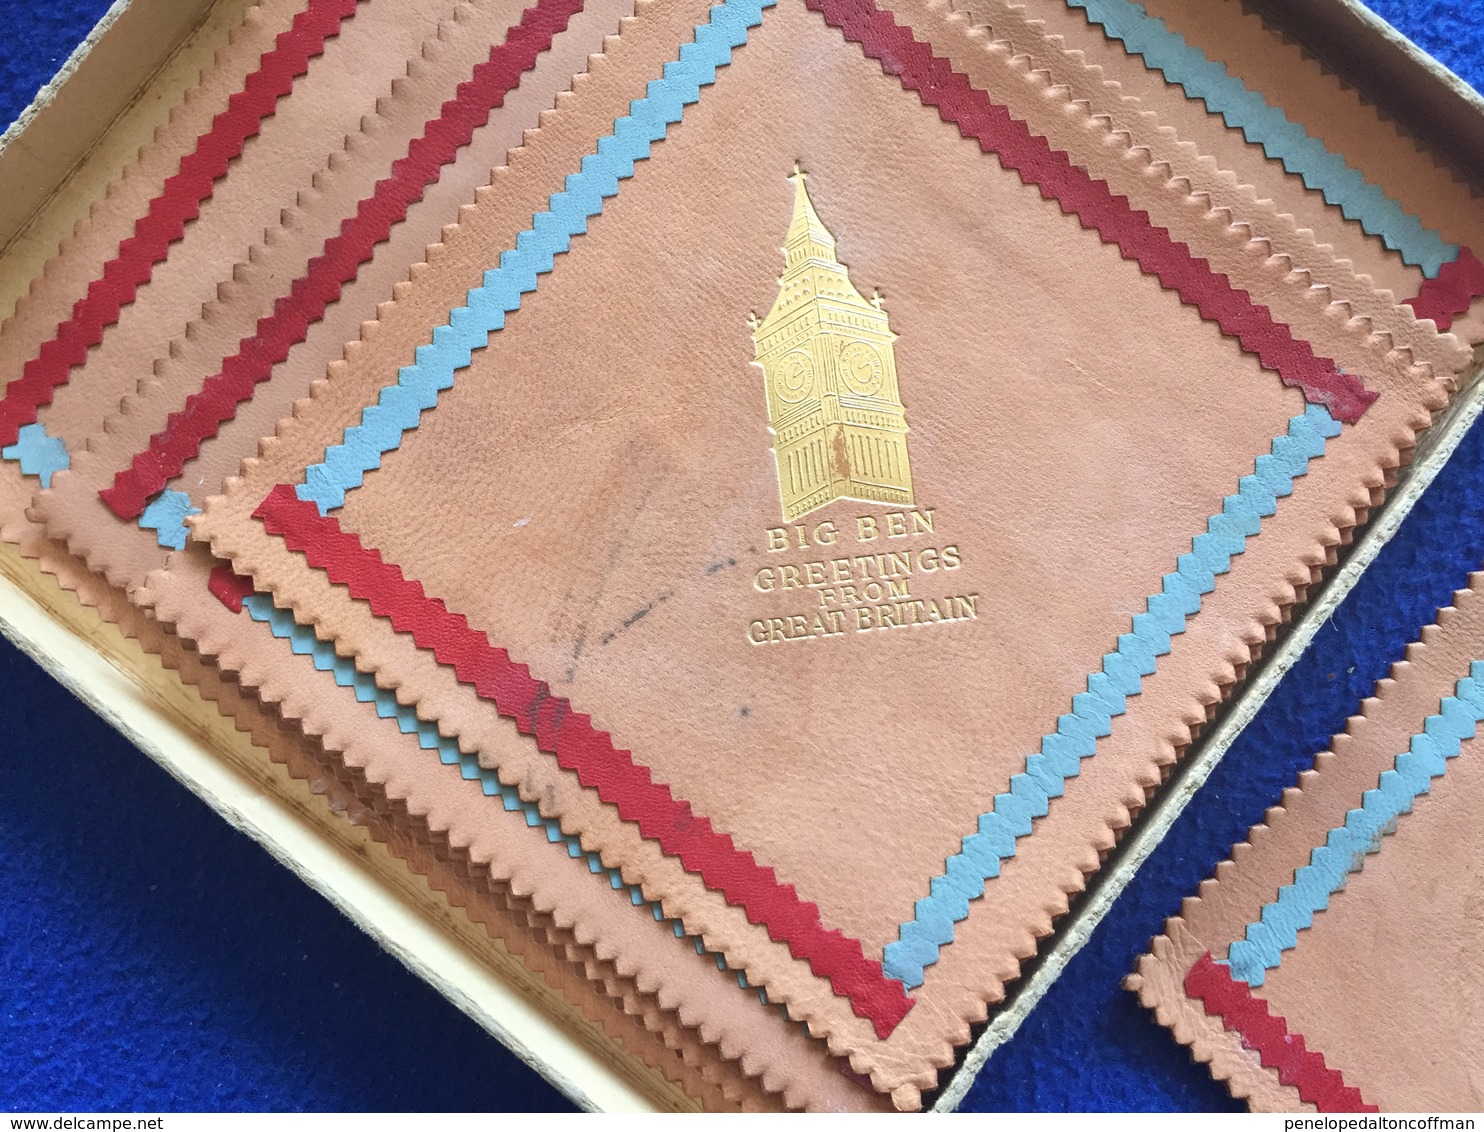 """Souvenir """"Big Ben Greetings From London"""" Leather Coasters 5.25"""" Inches Square, - Other"""